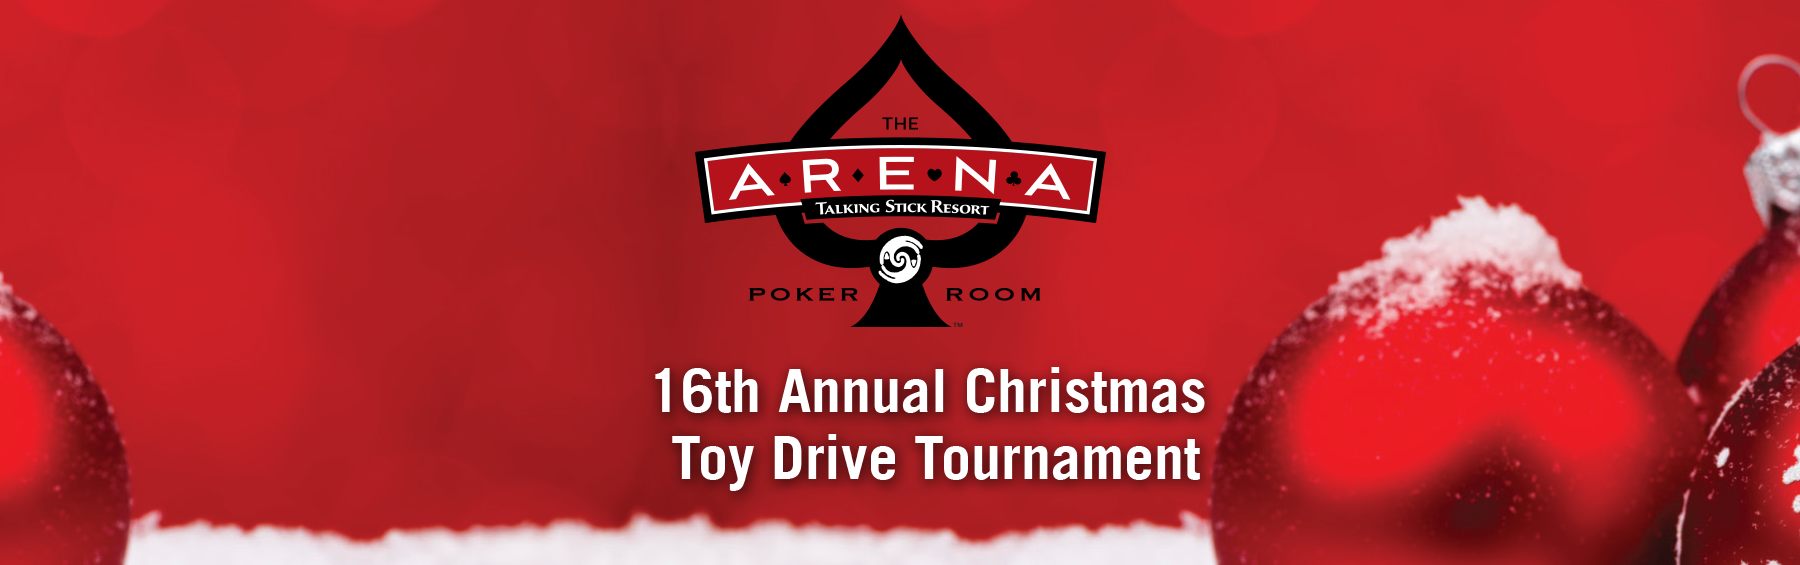 16th Annual Christmas Toy Drive Tournament